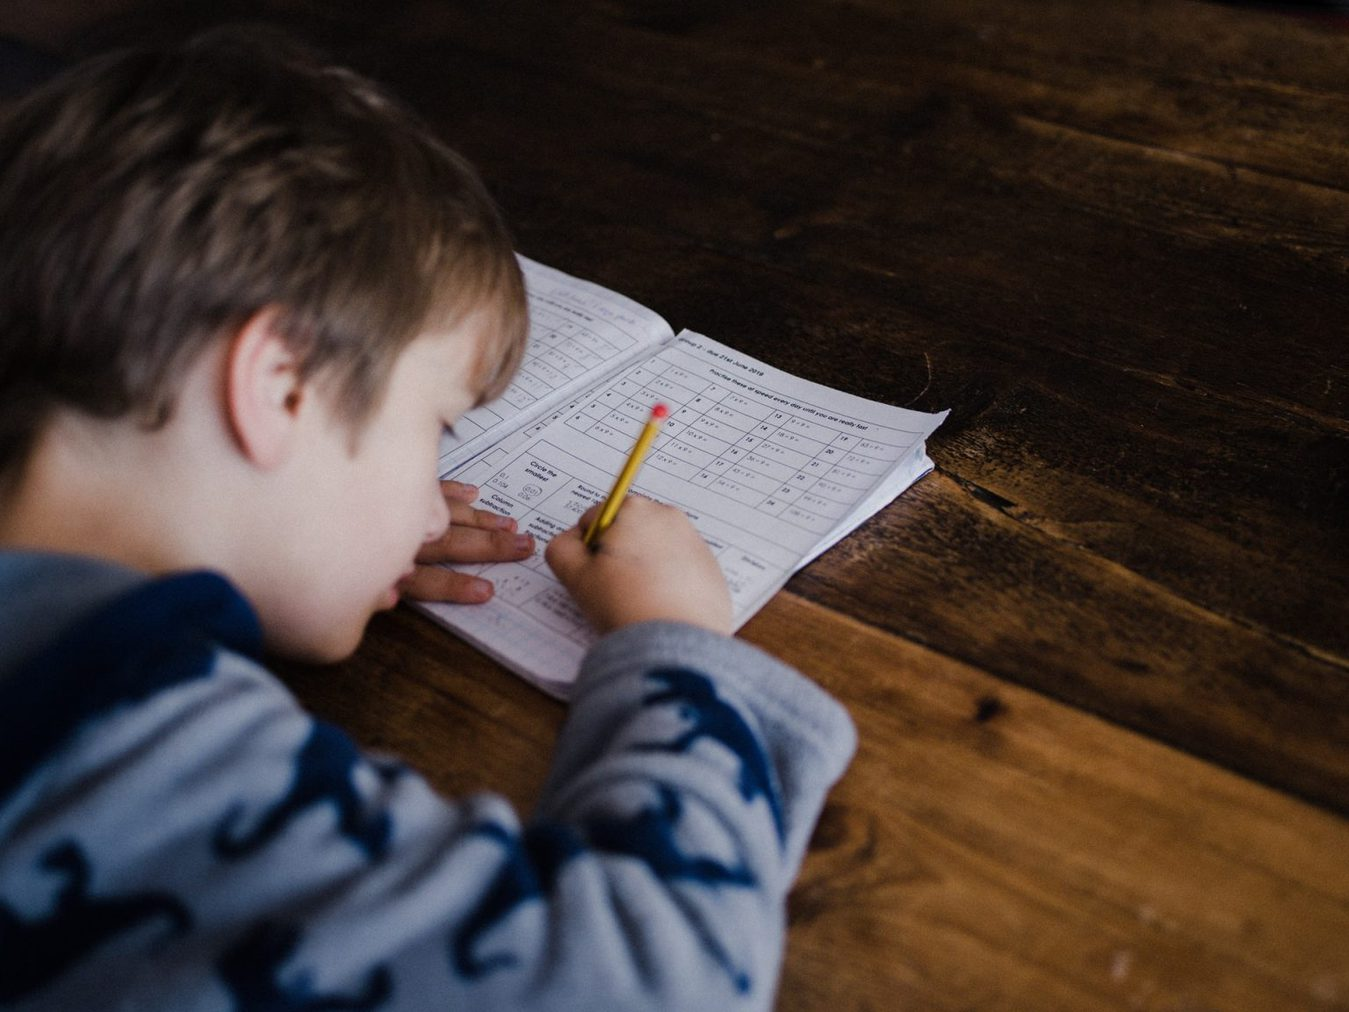 A boy studying at a wooden desk